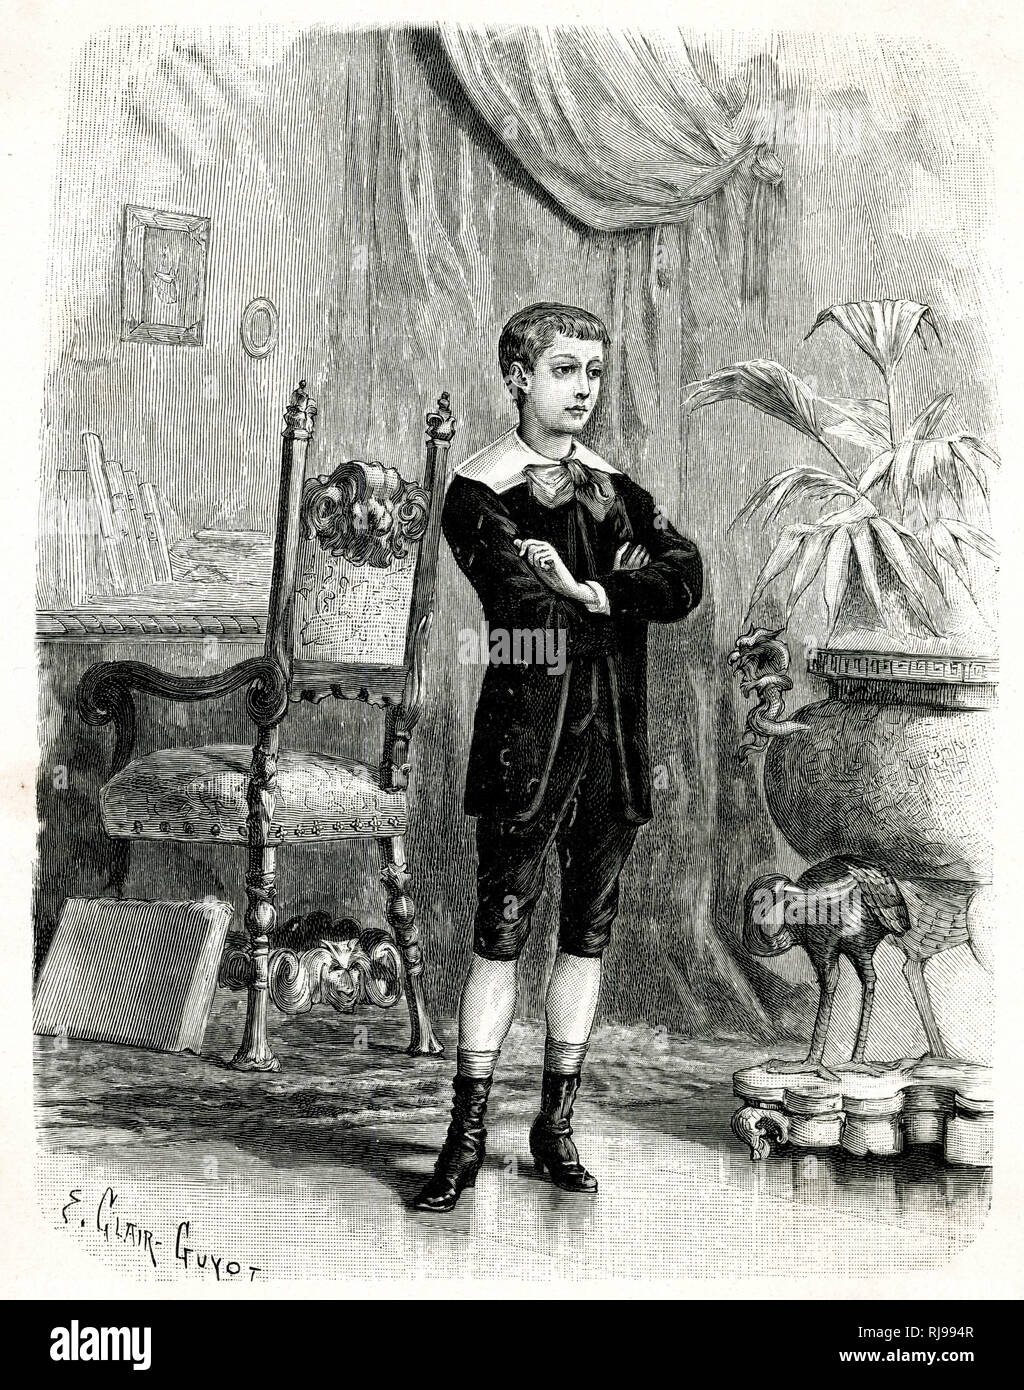 French boy wears a velvet suit comprised of knickerbockers, jacket fastened at the neck & open to reveal a waistcoat, white falling collar & large bow, socks & heeled boots. Stock Photo